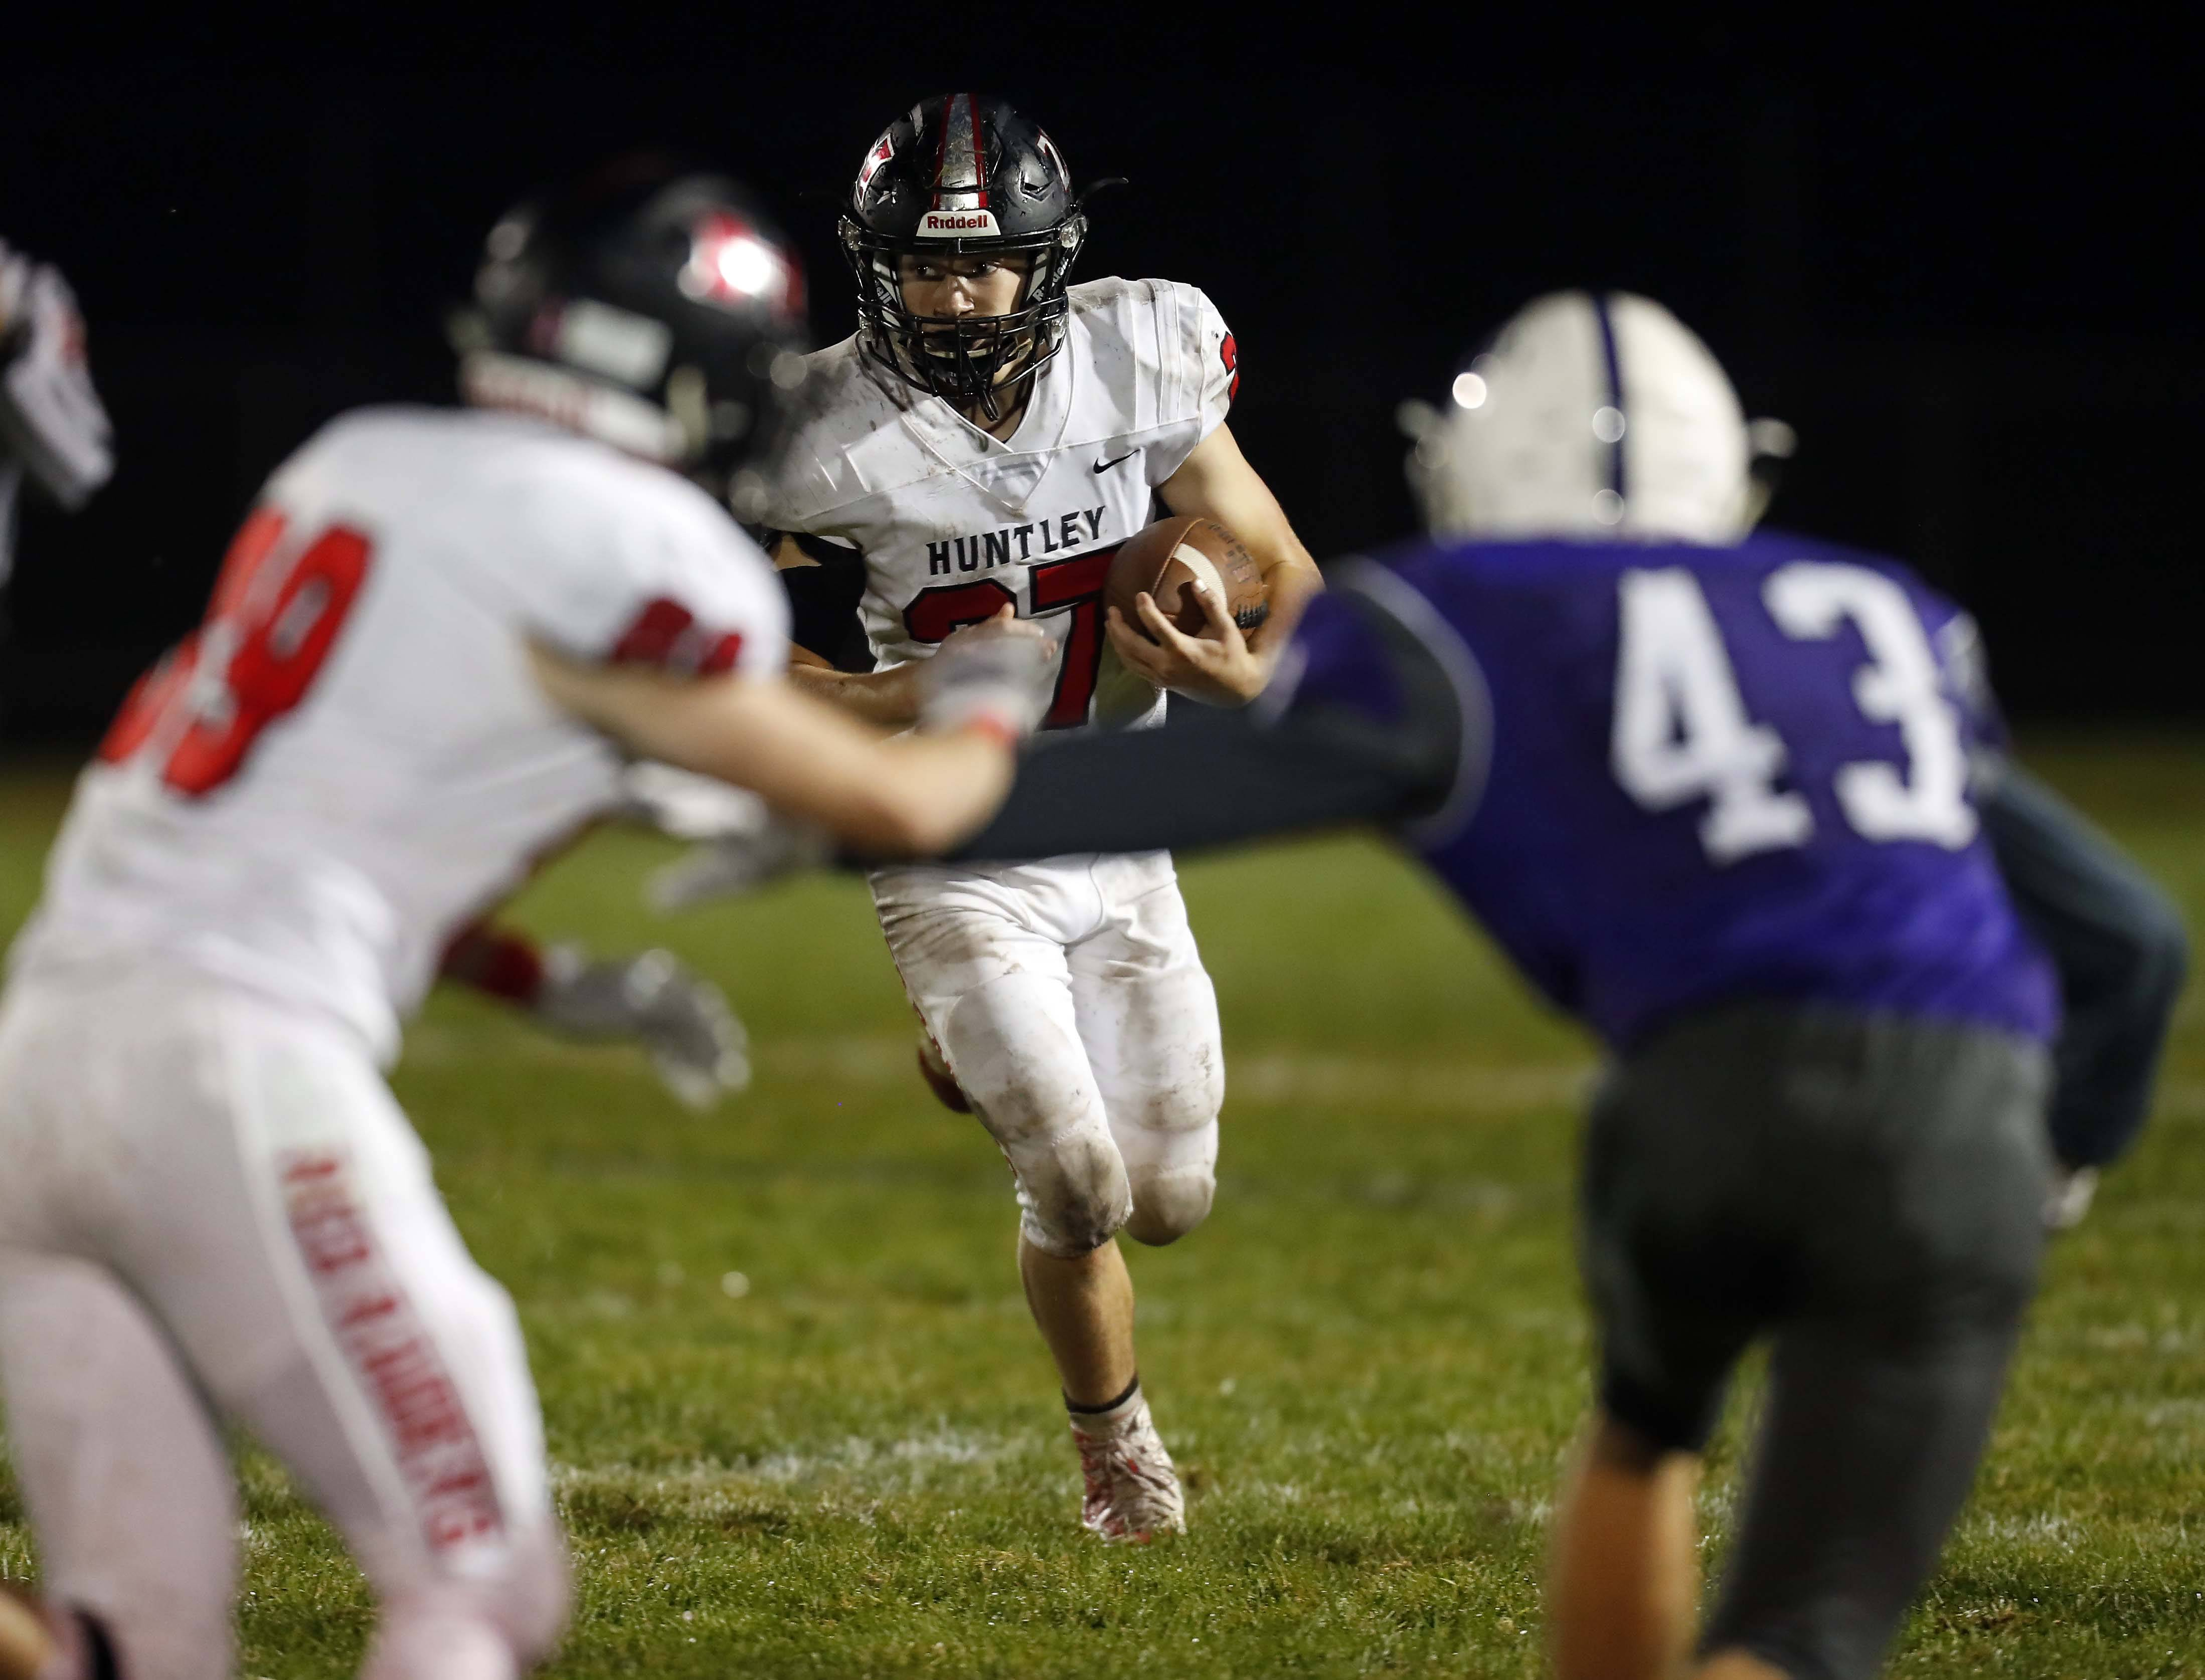 Huntley's Ryder Havens (27) looks for running room Friday during football in Hampshire.